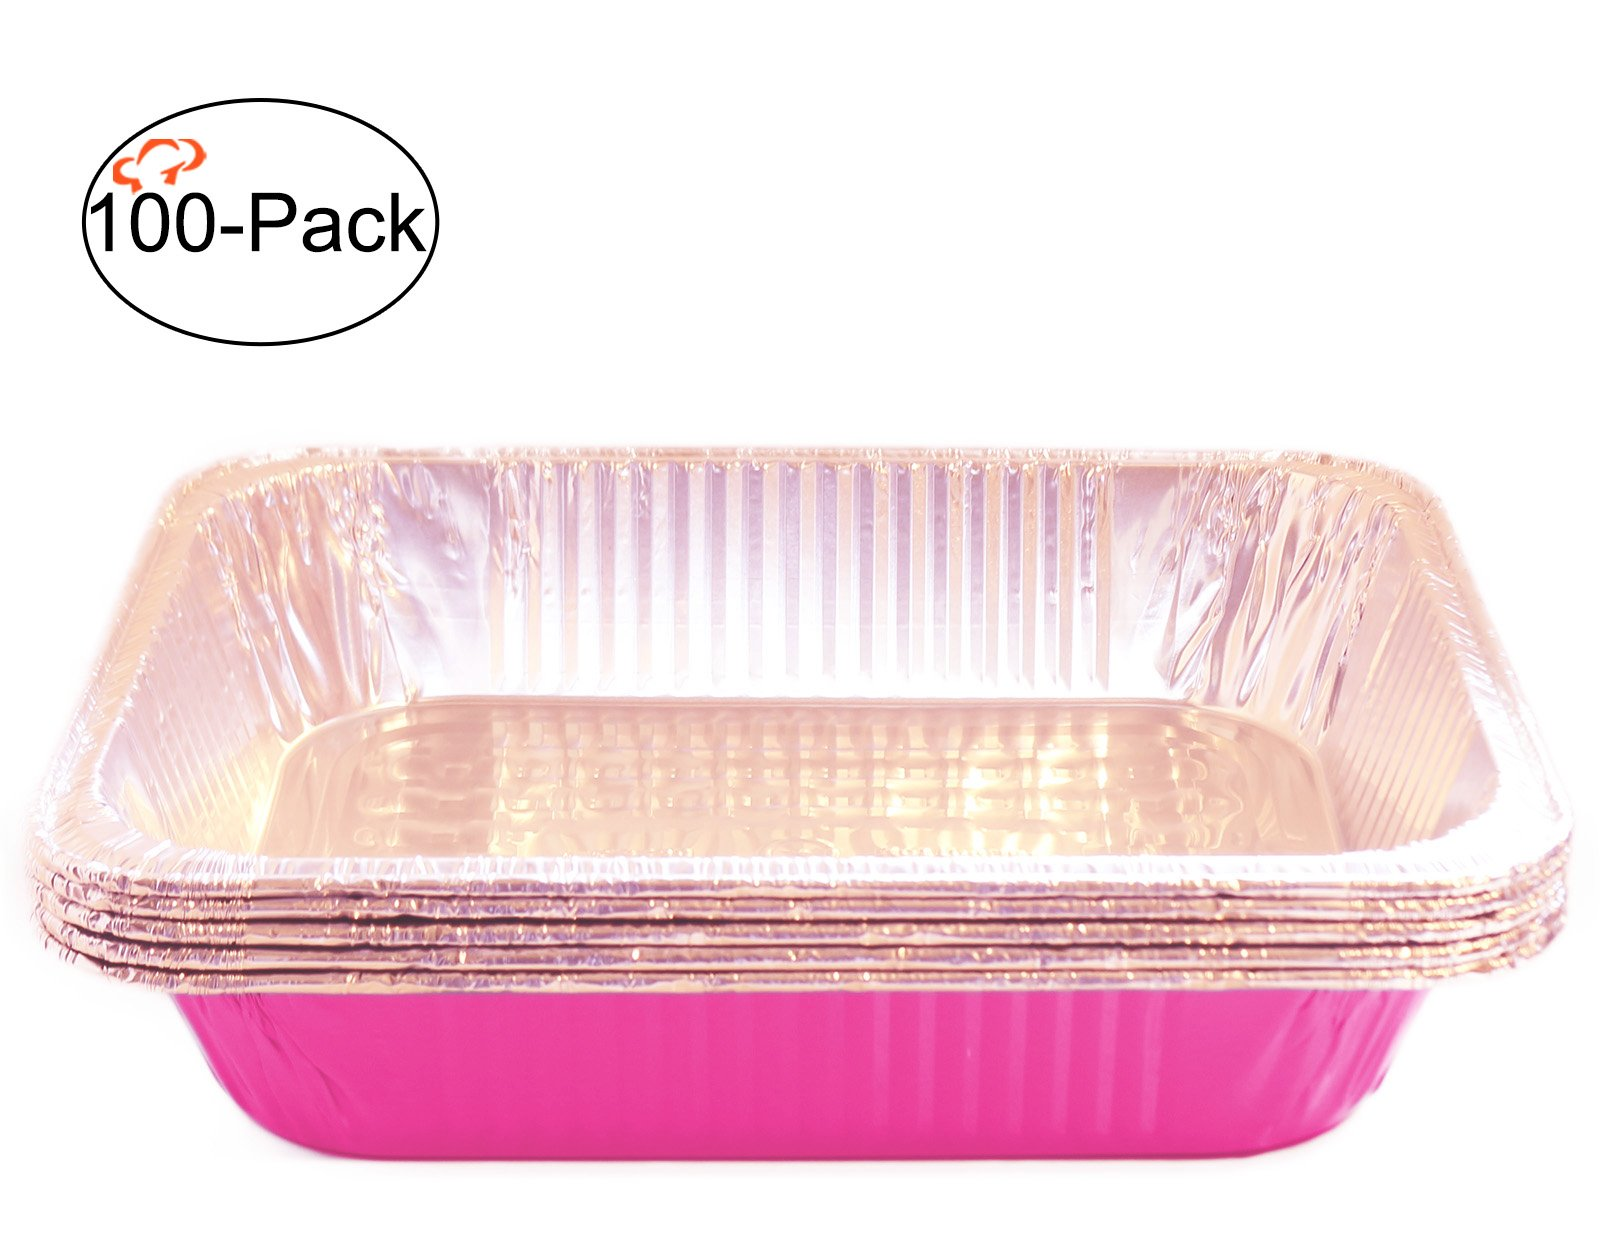 Tiger Chef Chafing Pans 100-Pack Pink Disposable Aluminum Foil Steam Table Deep Baking Pans, Half Size - 12.75in x 10.38in x 2.5in